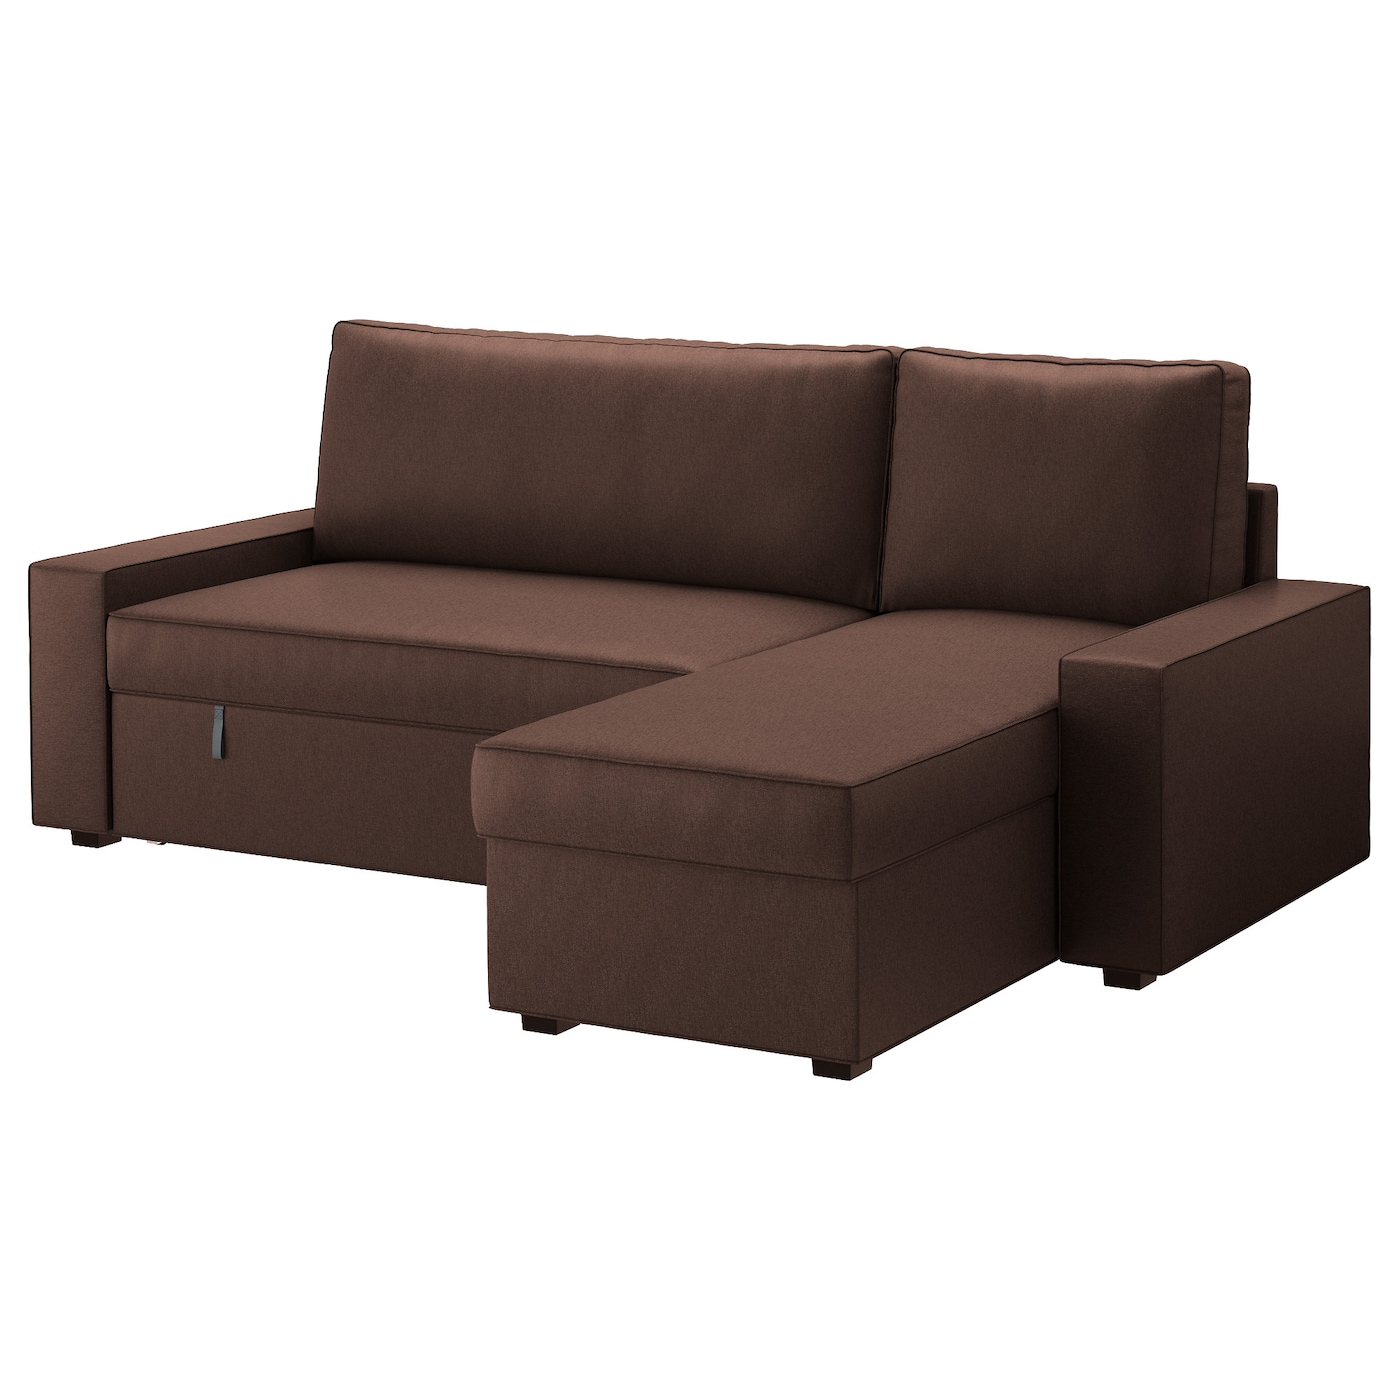 Vilasund sofa bed with chaise longue borred dark brown ikea for Brown couch with chaise